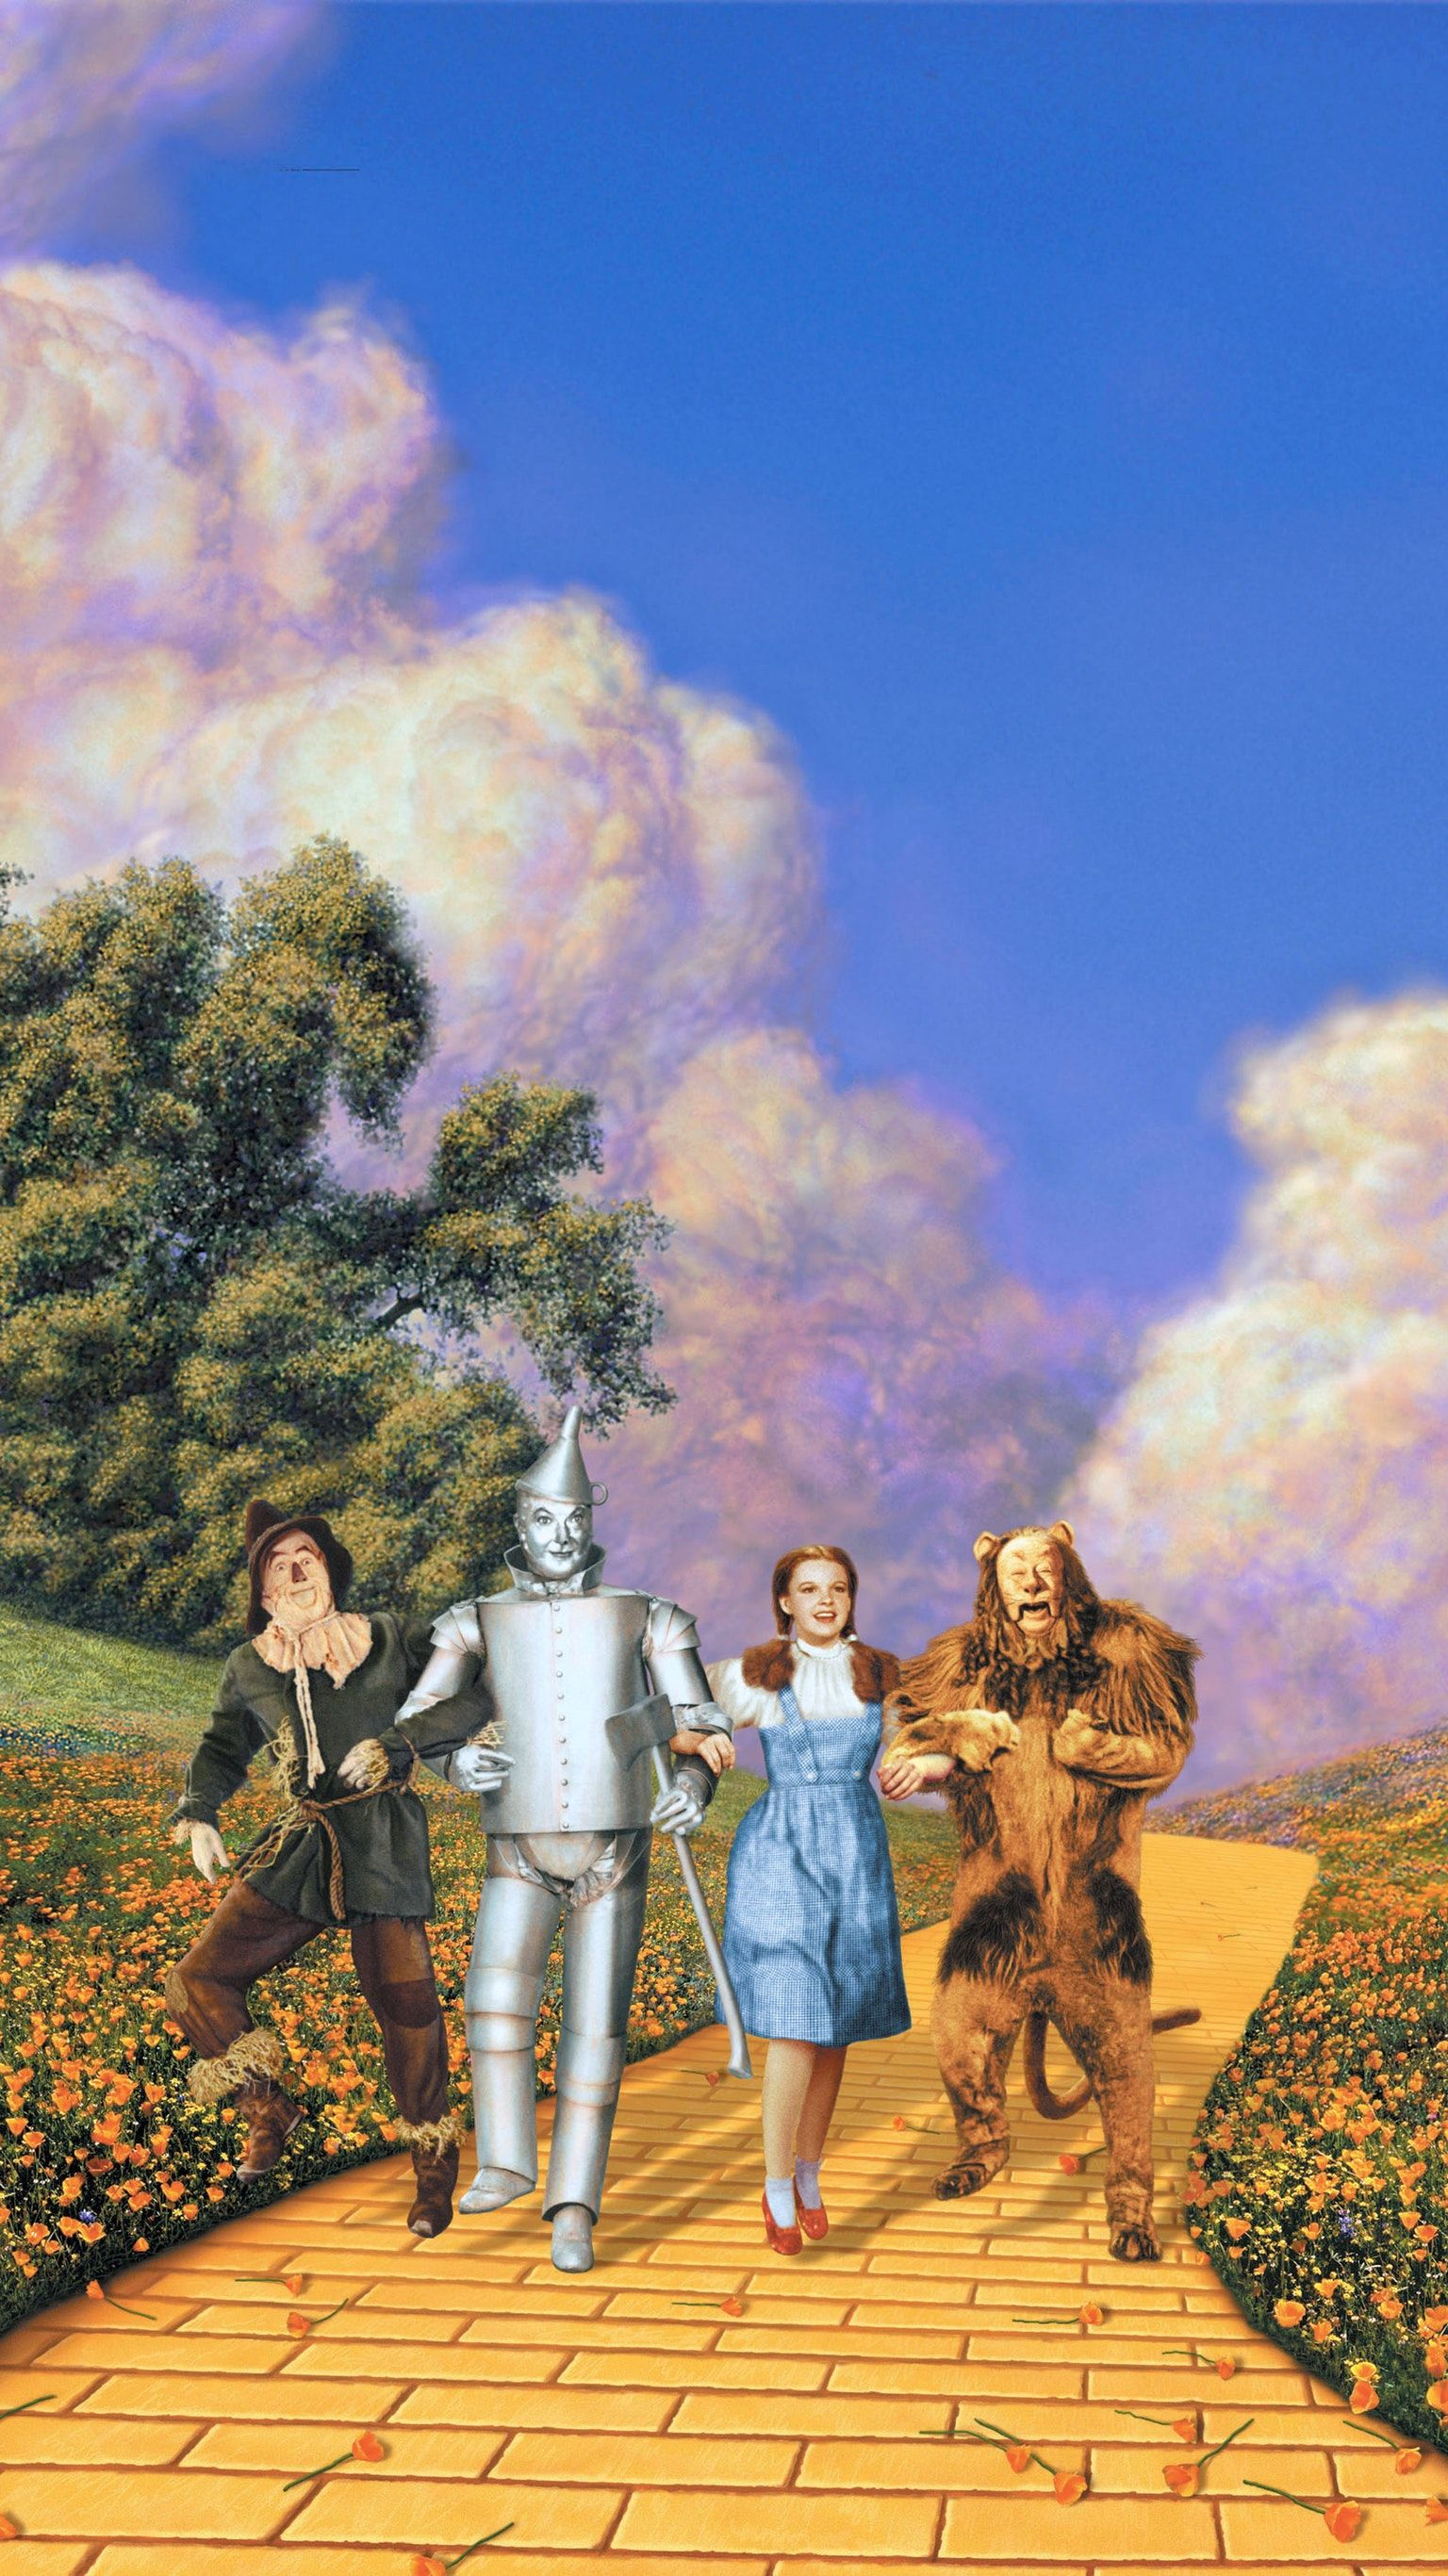 The Wizard Of Oz 1939 Phone Wallpaper In 2020 Wizard Of Oz